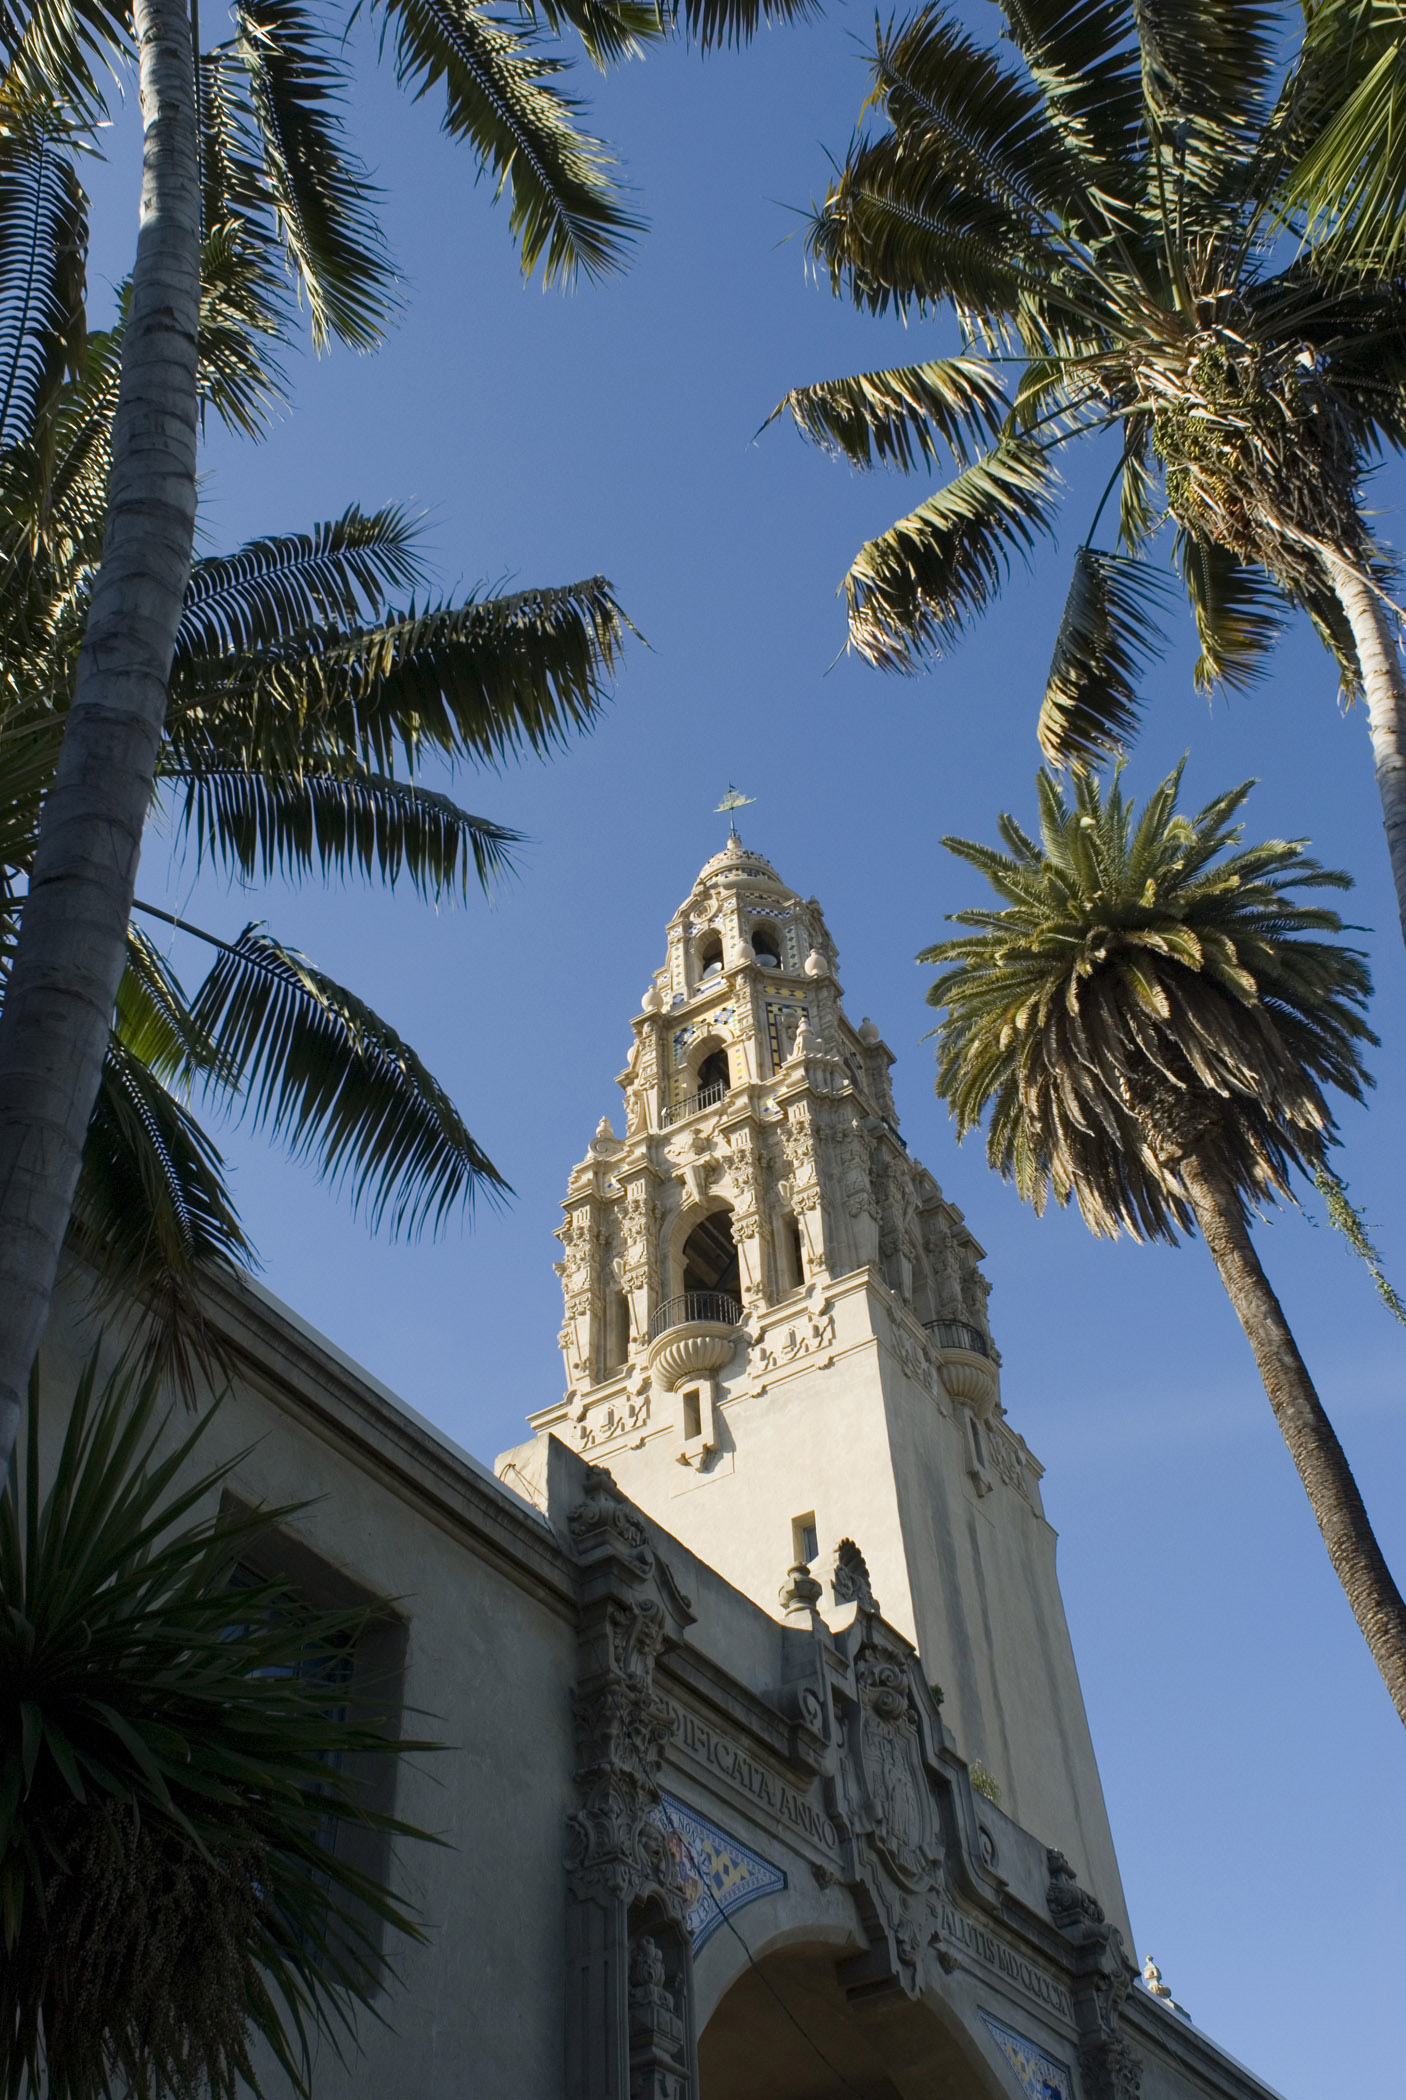 Architectural Tall Building Structure at Balboa Park San Diego. Surrounded by Tall Coconut Trees. Captured from Low Angle Point. Isolated on Light Blue Sky background.